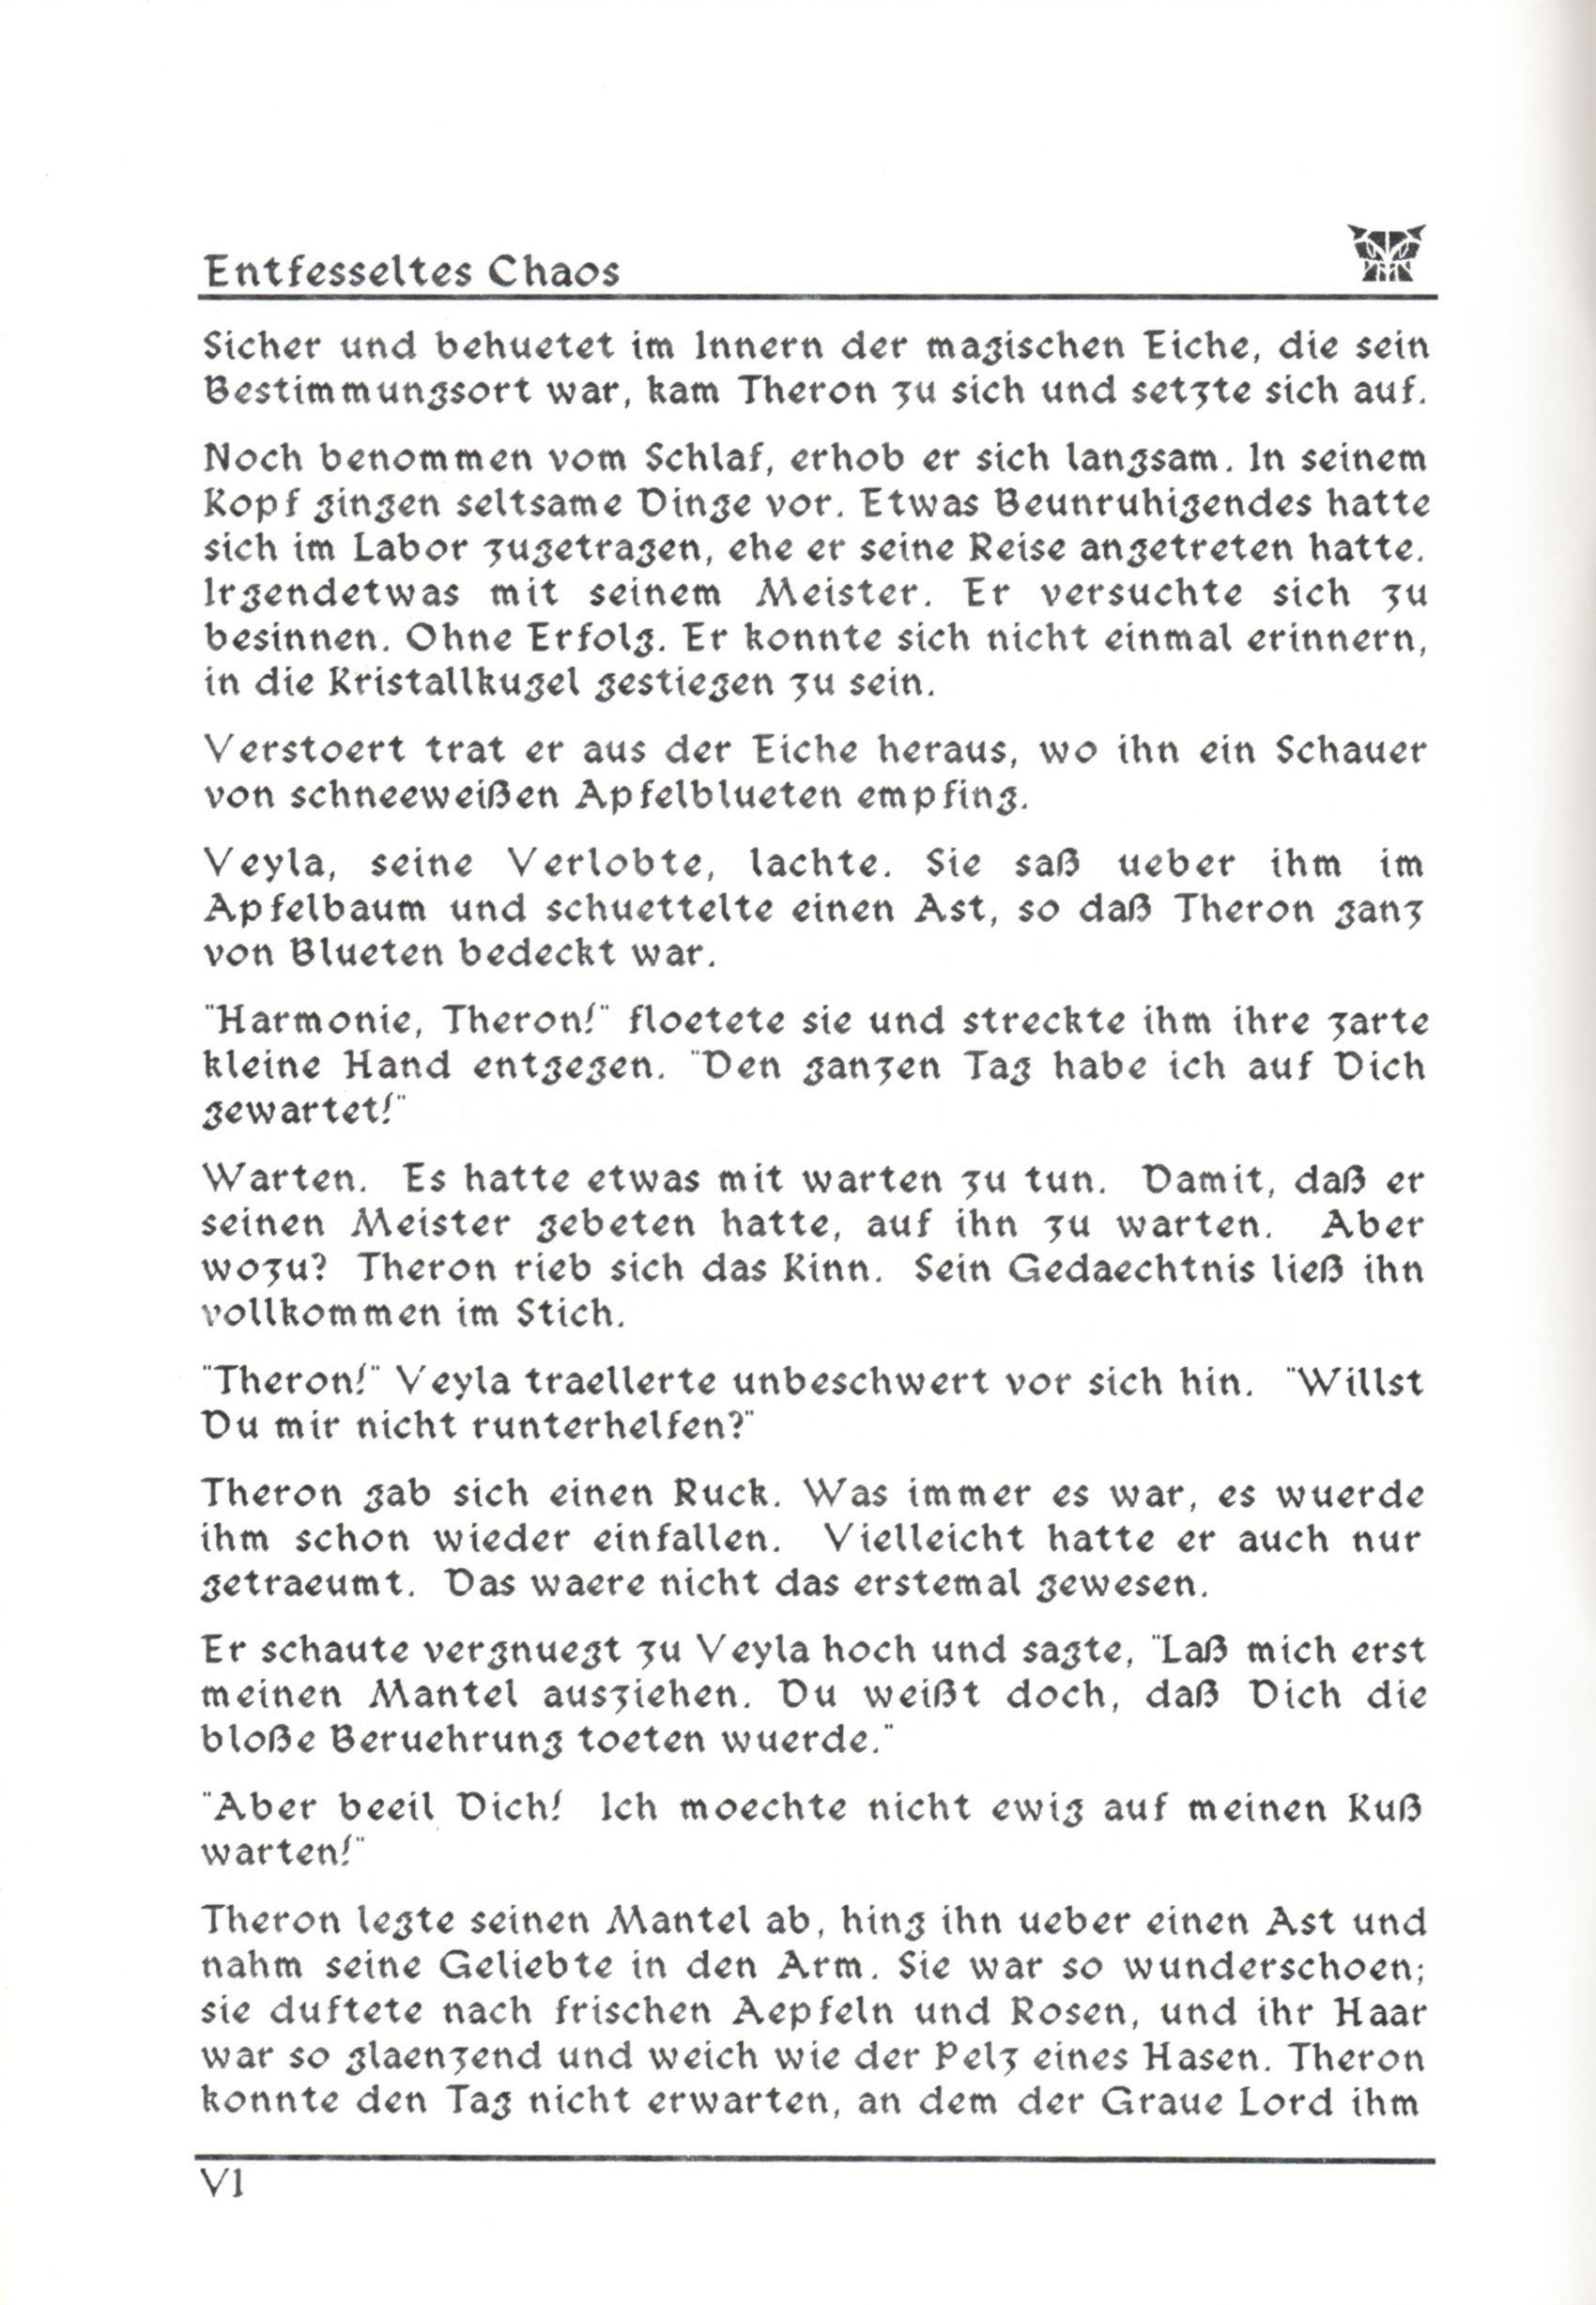 Game - Dungeon Master - DE - PC - Psygnosis - Manual - Page 010 - Scan